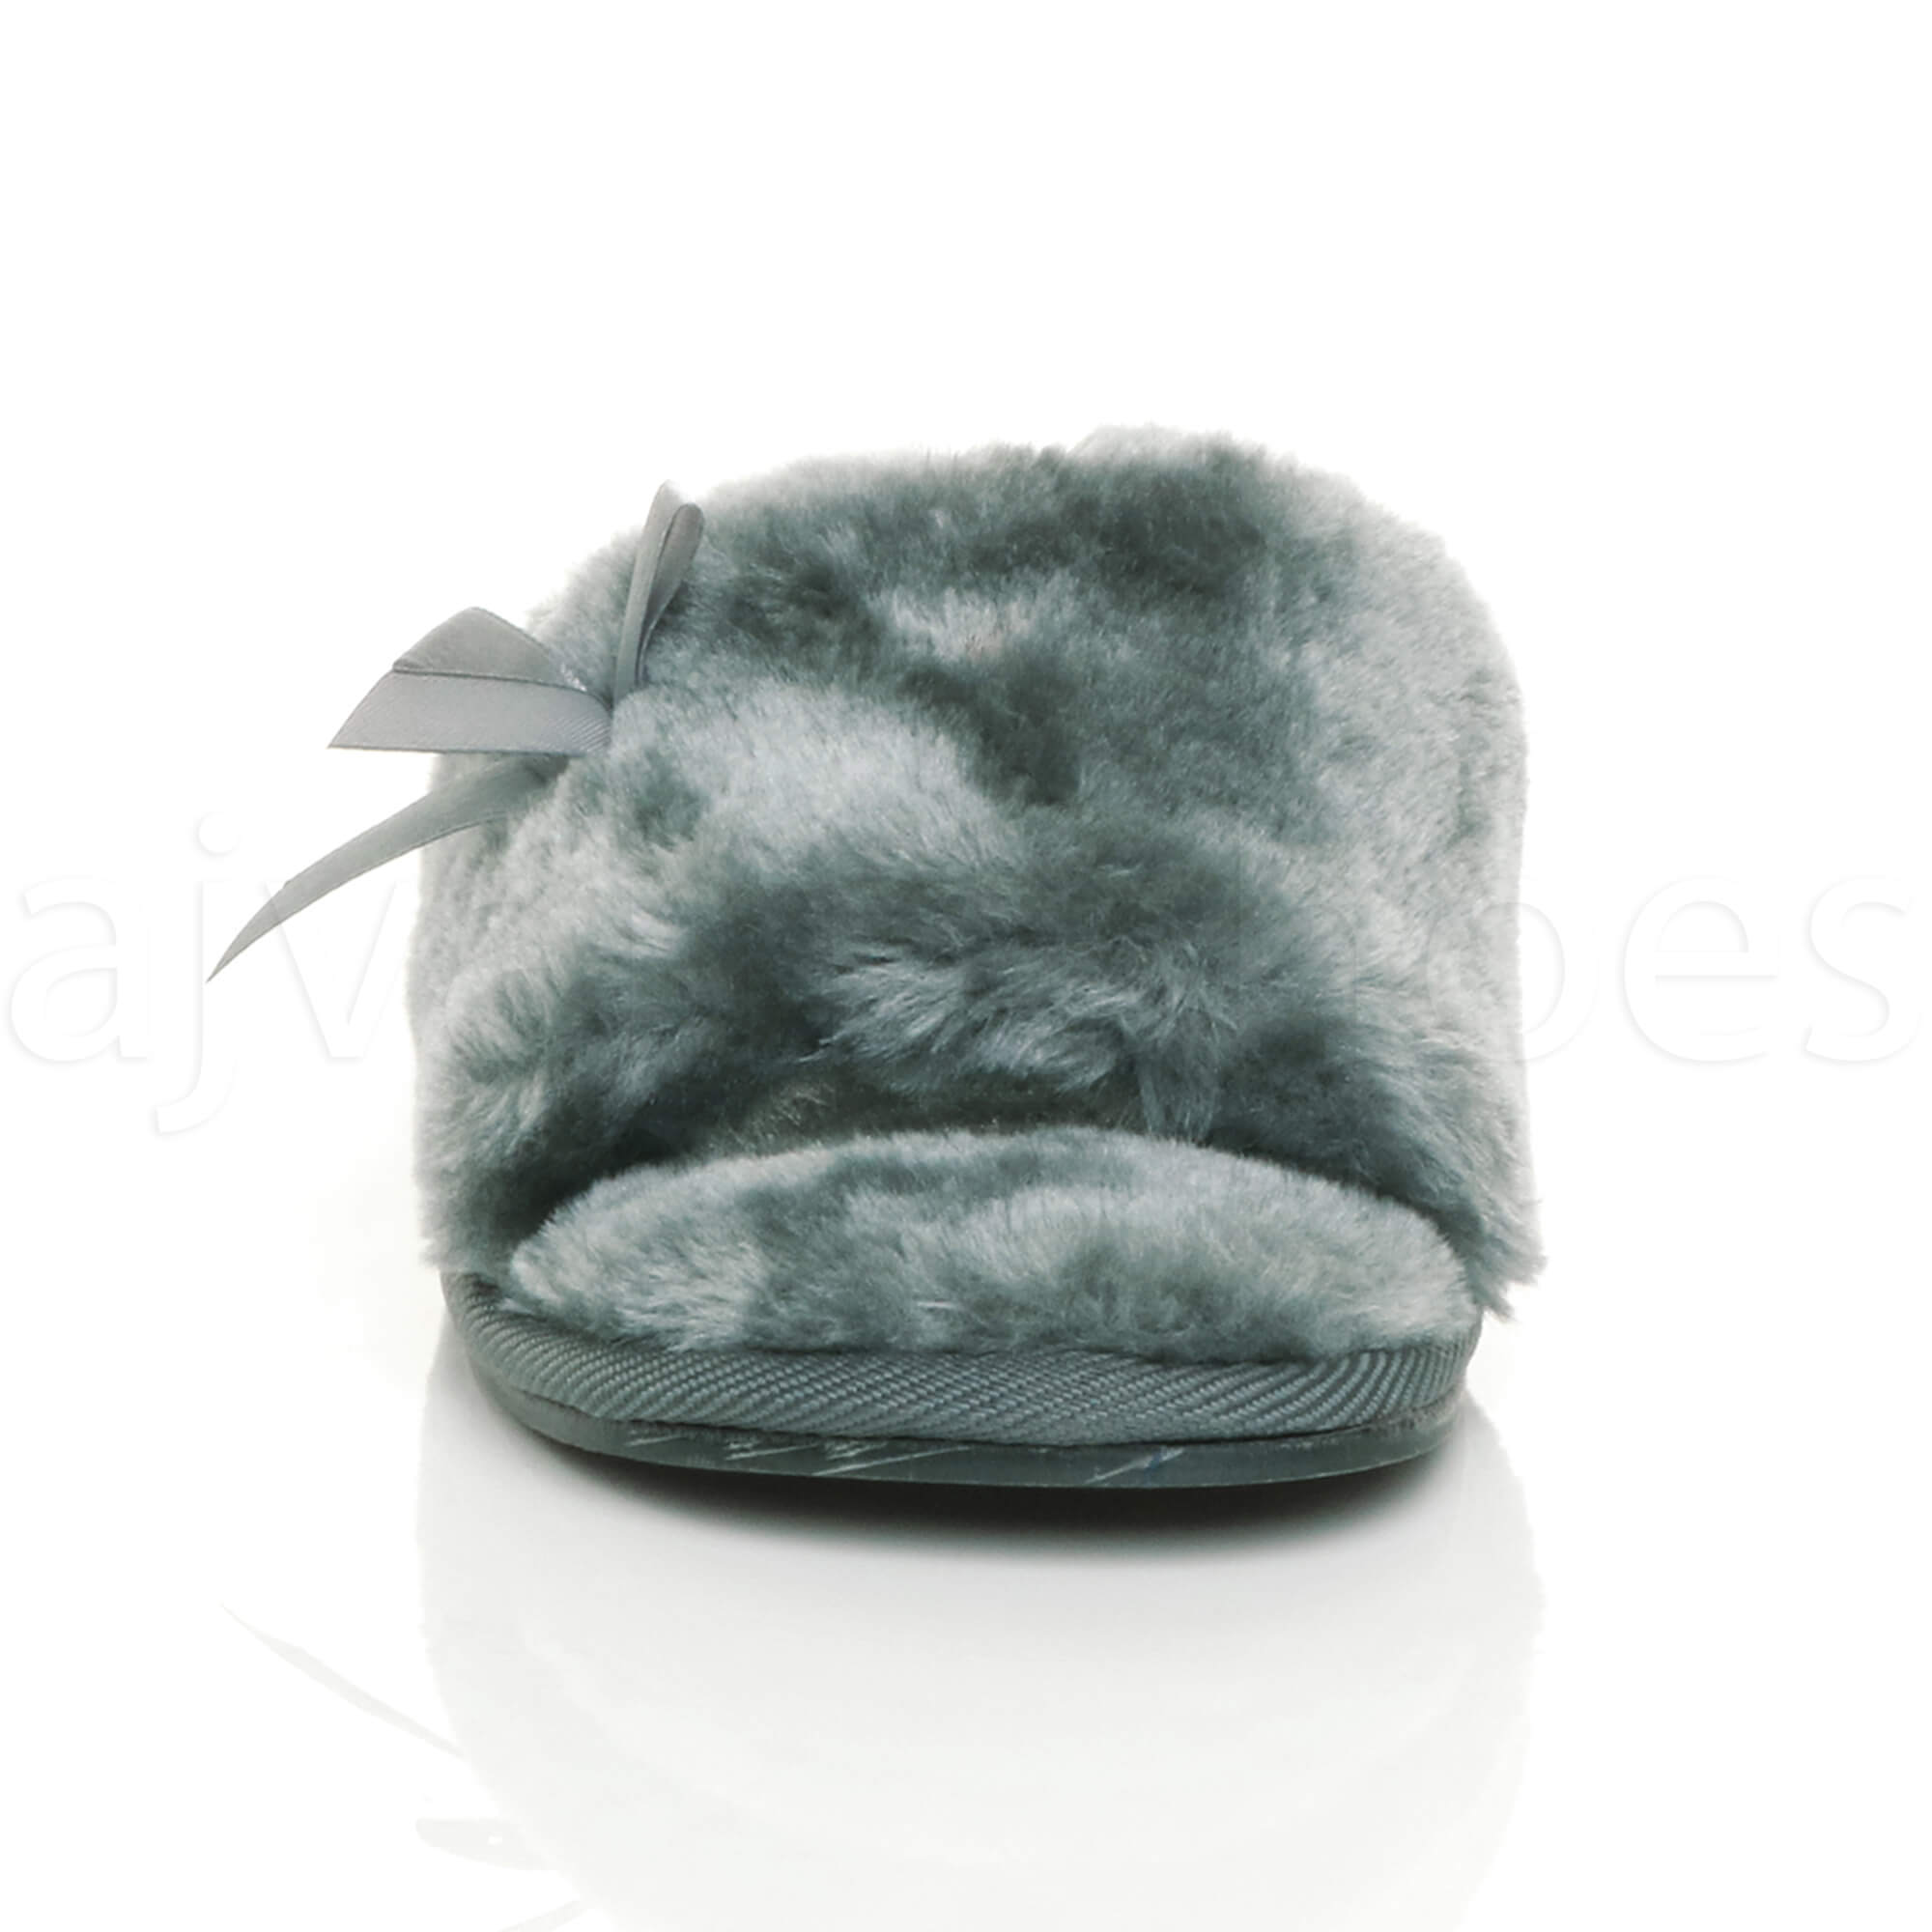 WOMENS-LADIES-FLAT-PEEP-TOE-BOW-LUXURY-COSY-FUR-LINED-SLIP-ON-SLIPPERS-SIZE thumbnail 31